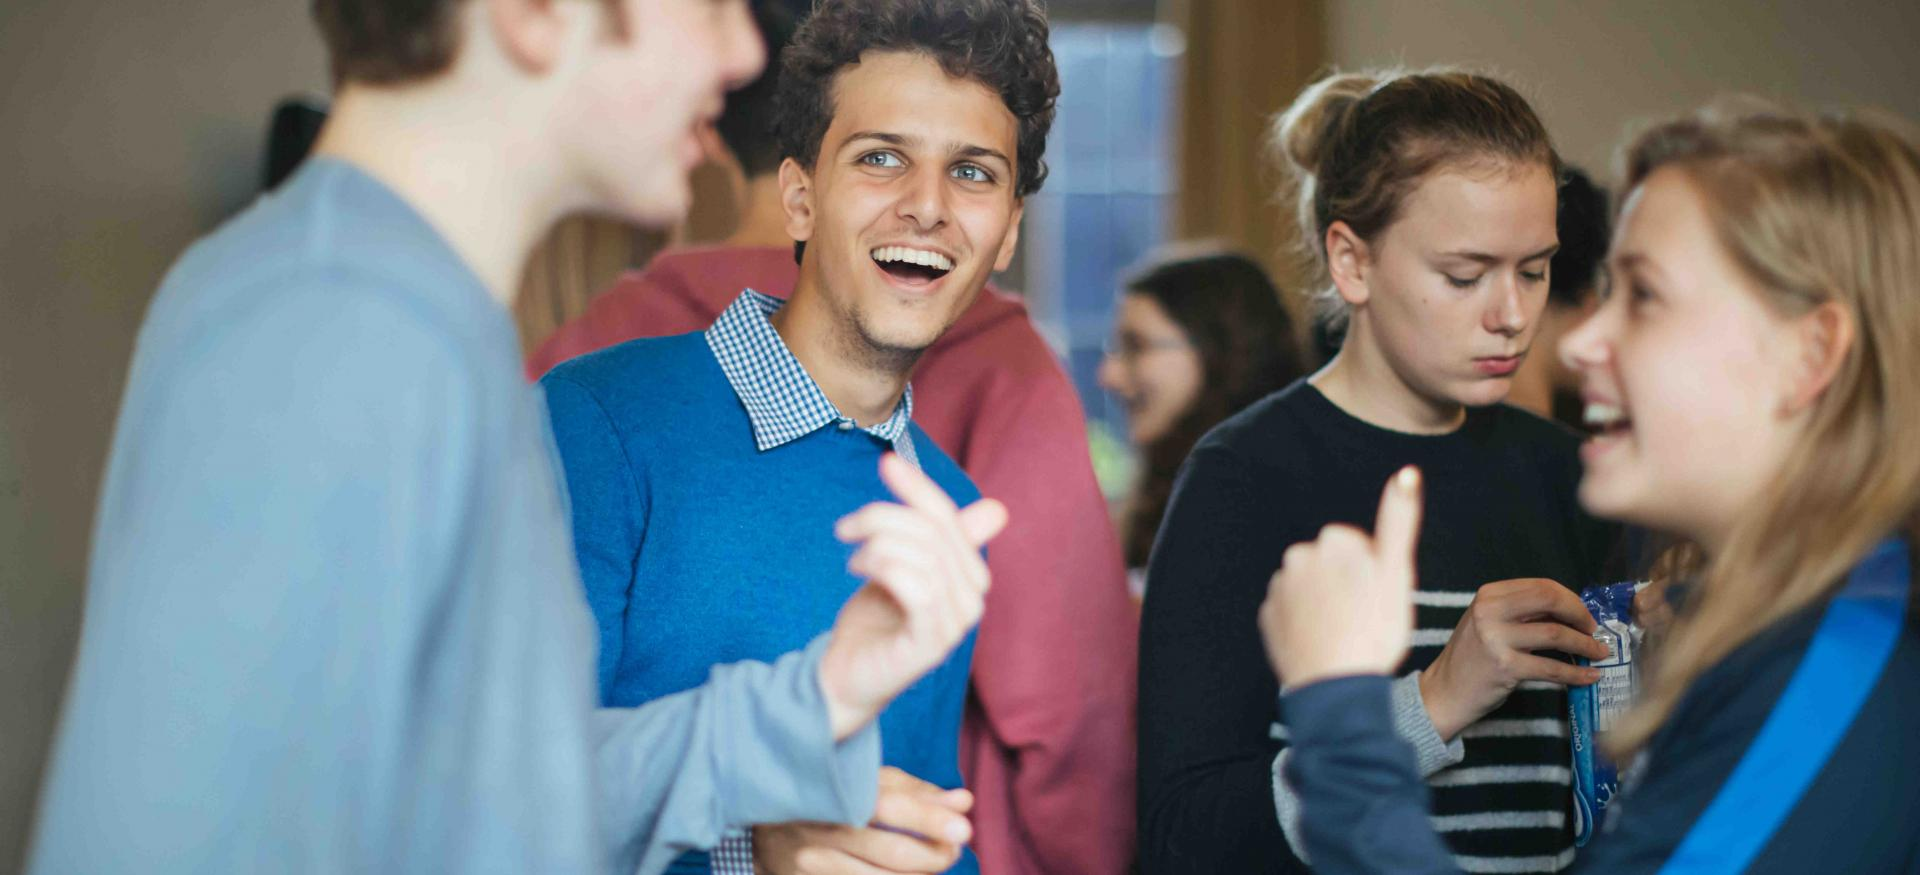 A group of students talk and laugh in the Trinity JCR; the image focuses on a male student laughing and looking at another student.